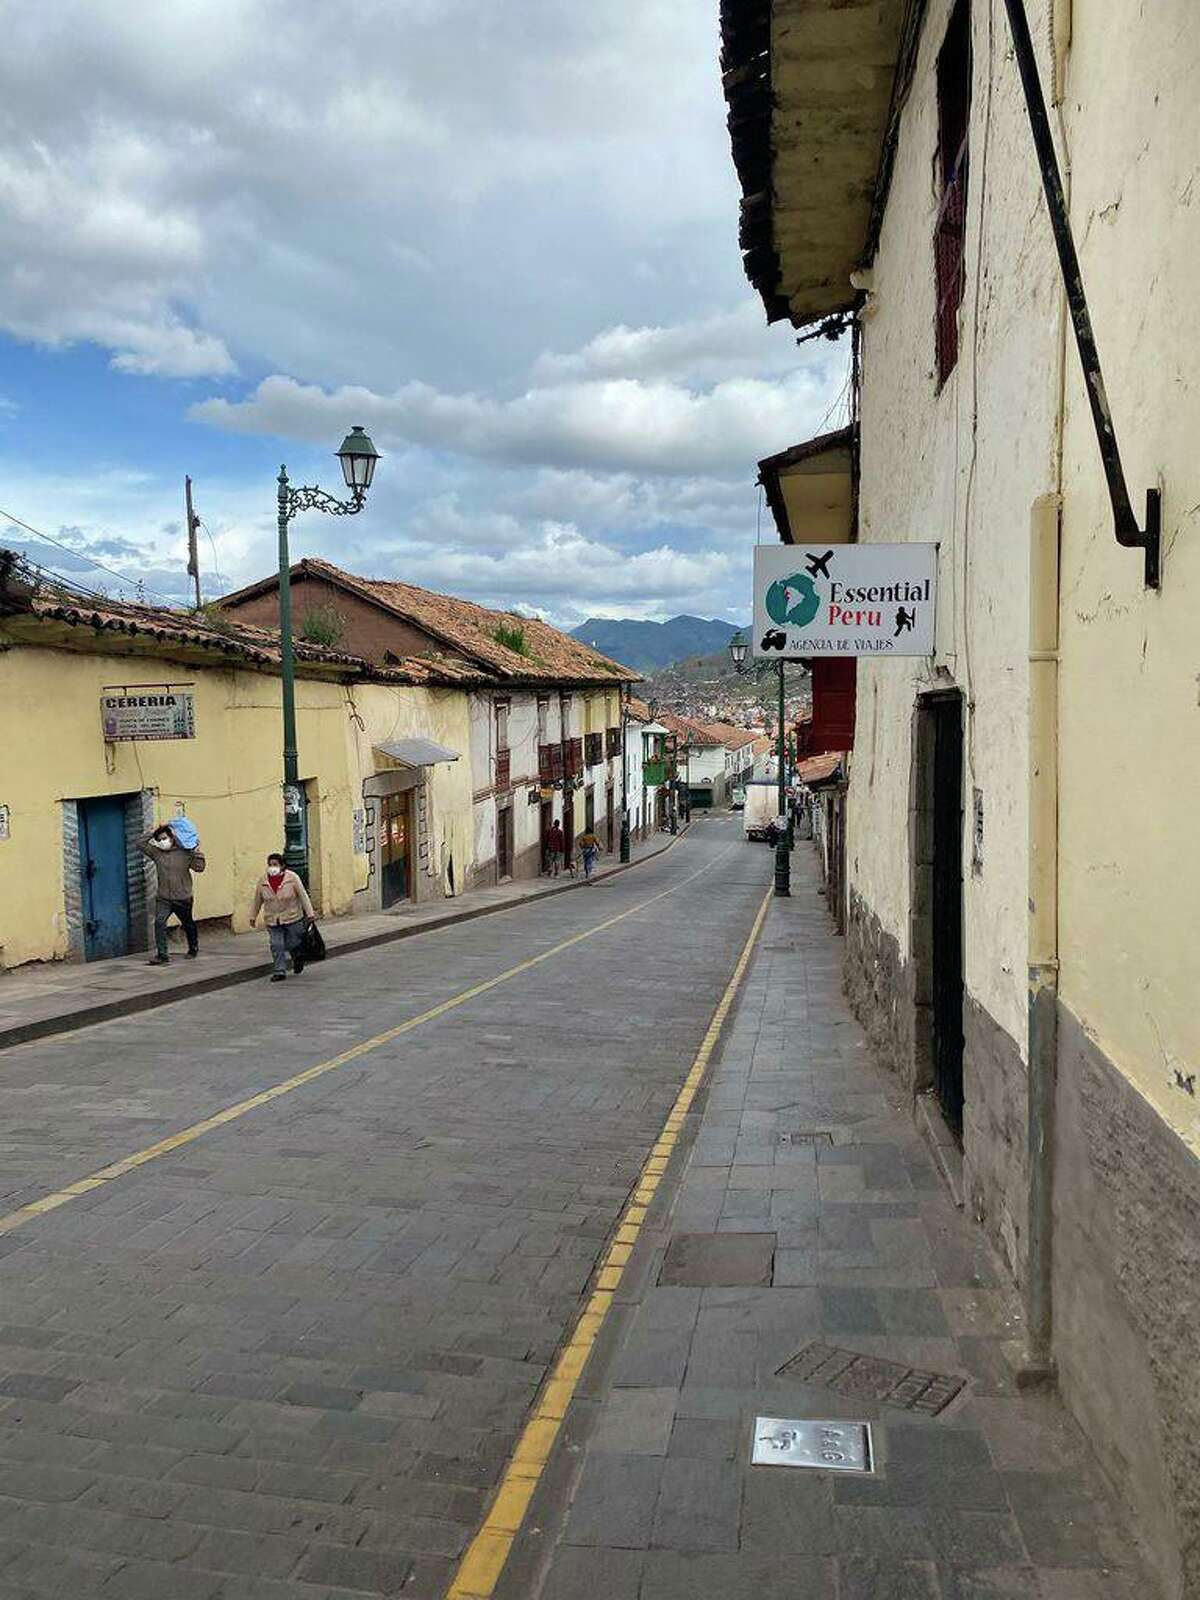 Shelton residents Amy Pavlik and Giuliana Candiotti are stuck in self-quarantine in Lima, Peru, where the streets near where they are staying are deserted.